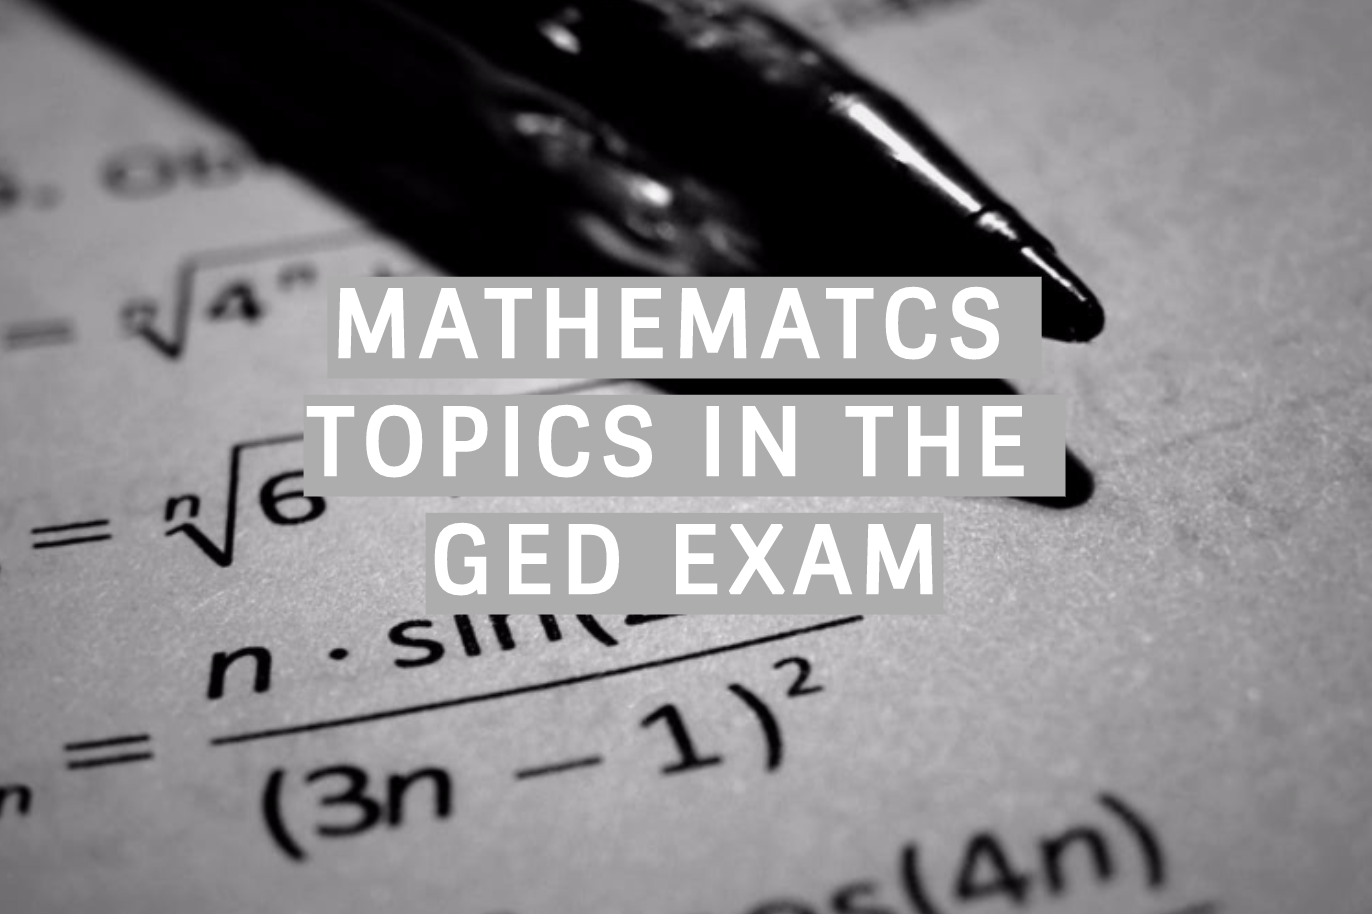 Mathematics Topics In The Ged Exam